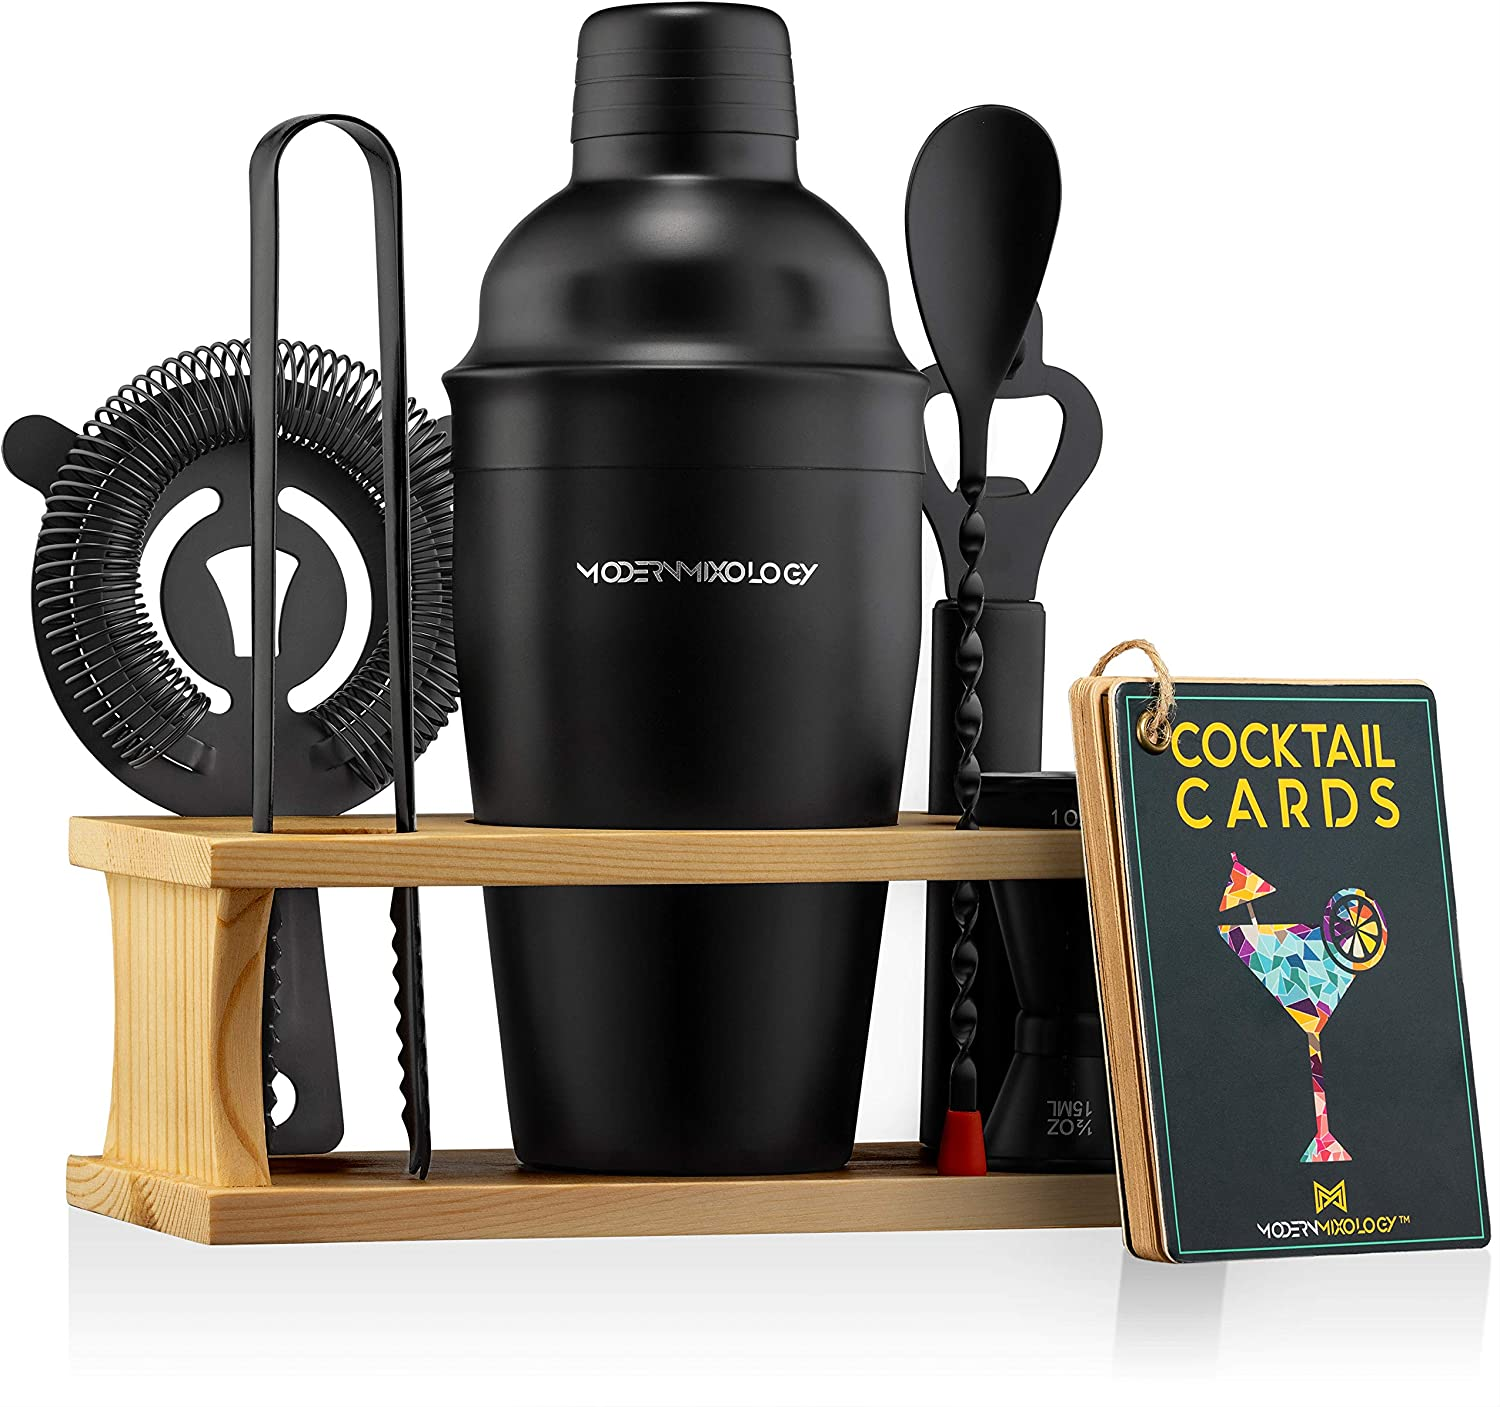 Mixology Bartender Kit with Stand | Black Bar Set Cocktail Shaker Set for Drink Mixing - Bar Tools: Martini Shaker, Jigger, Strainer, Bar Mixer Spoon, Tongs, Opener | Best Bartender Kit for Beginners